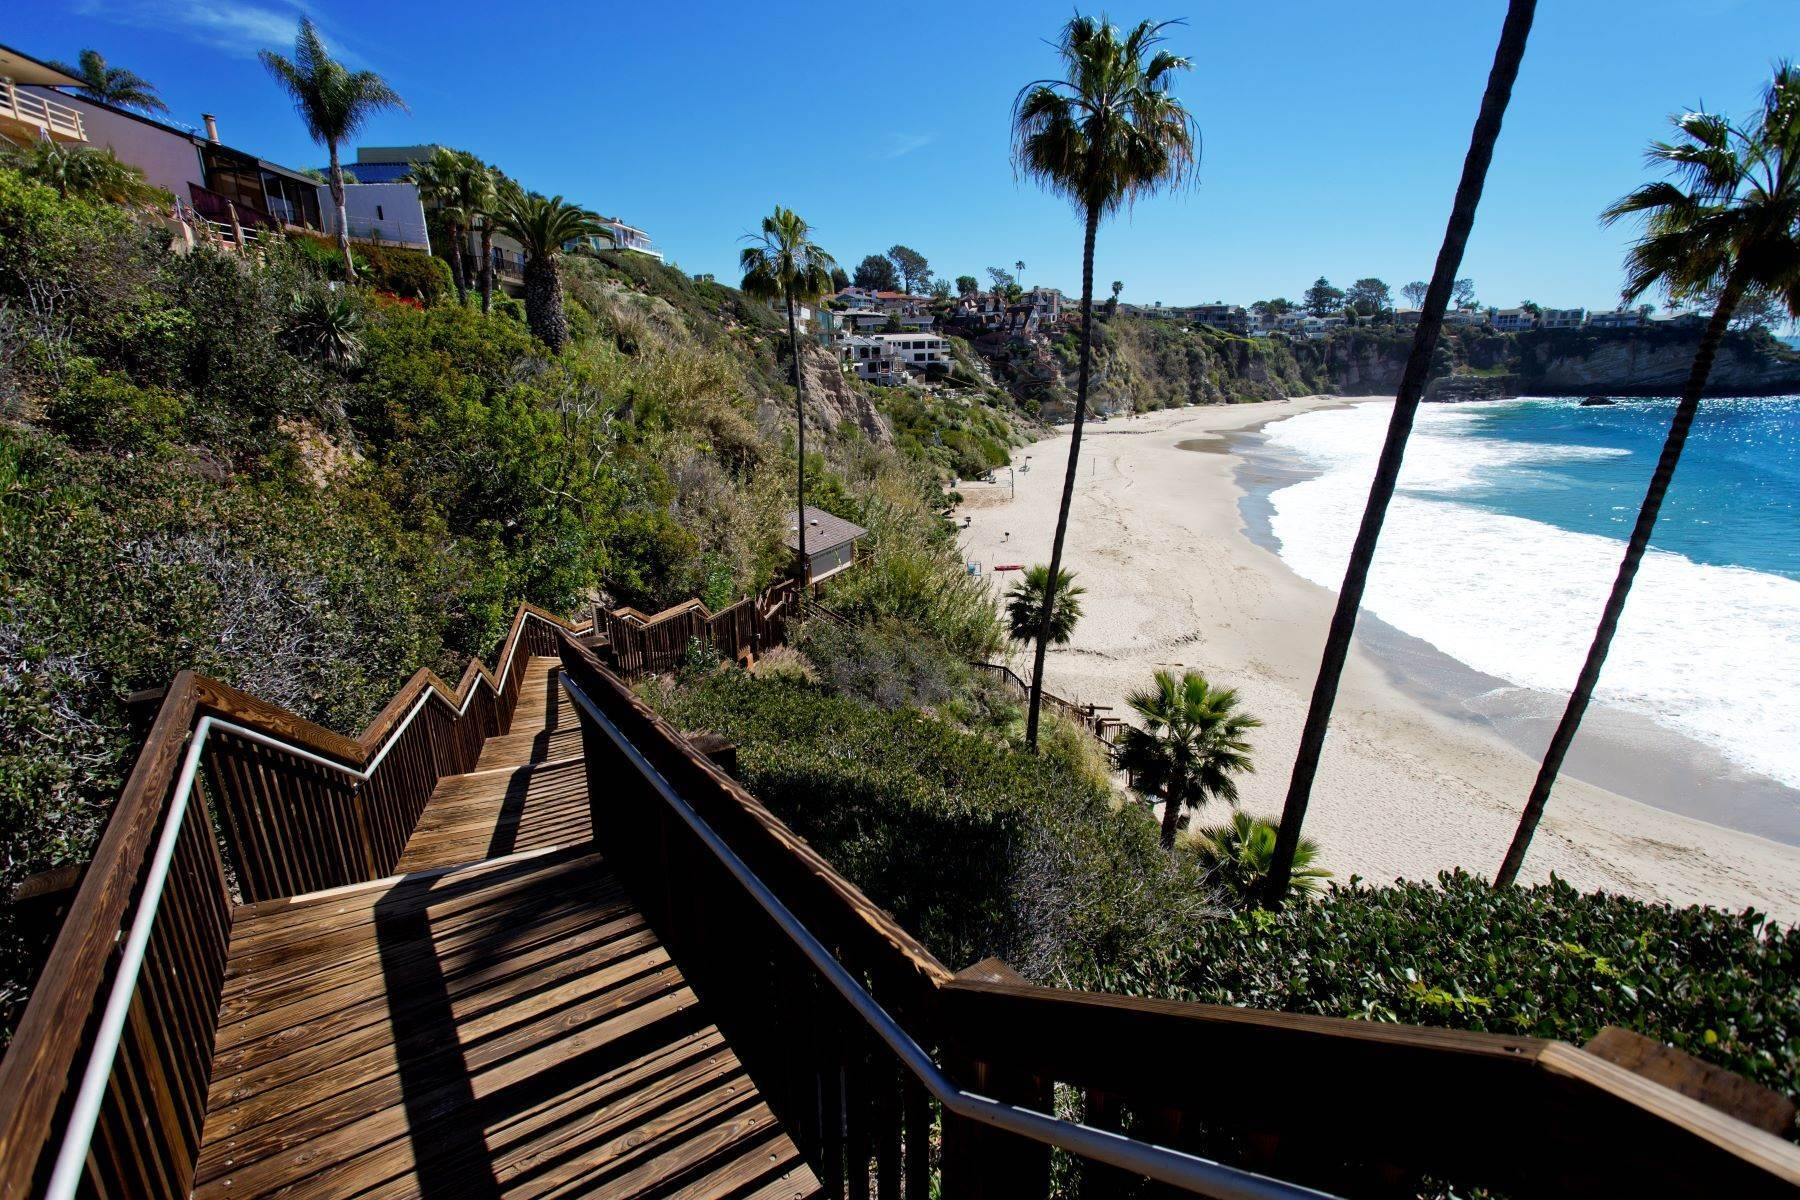 37. Single Family Homes for Sale at 24 South Portola, Laguna Beach, CA 92651 24 South Portola Laguna Beach, California 92651 United States